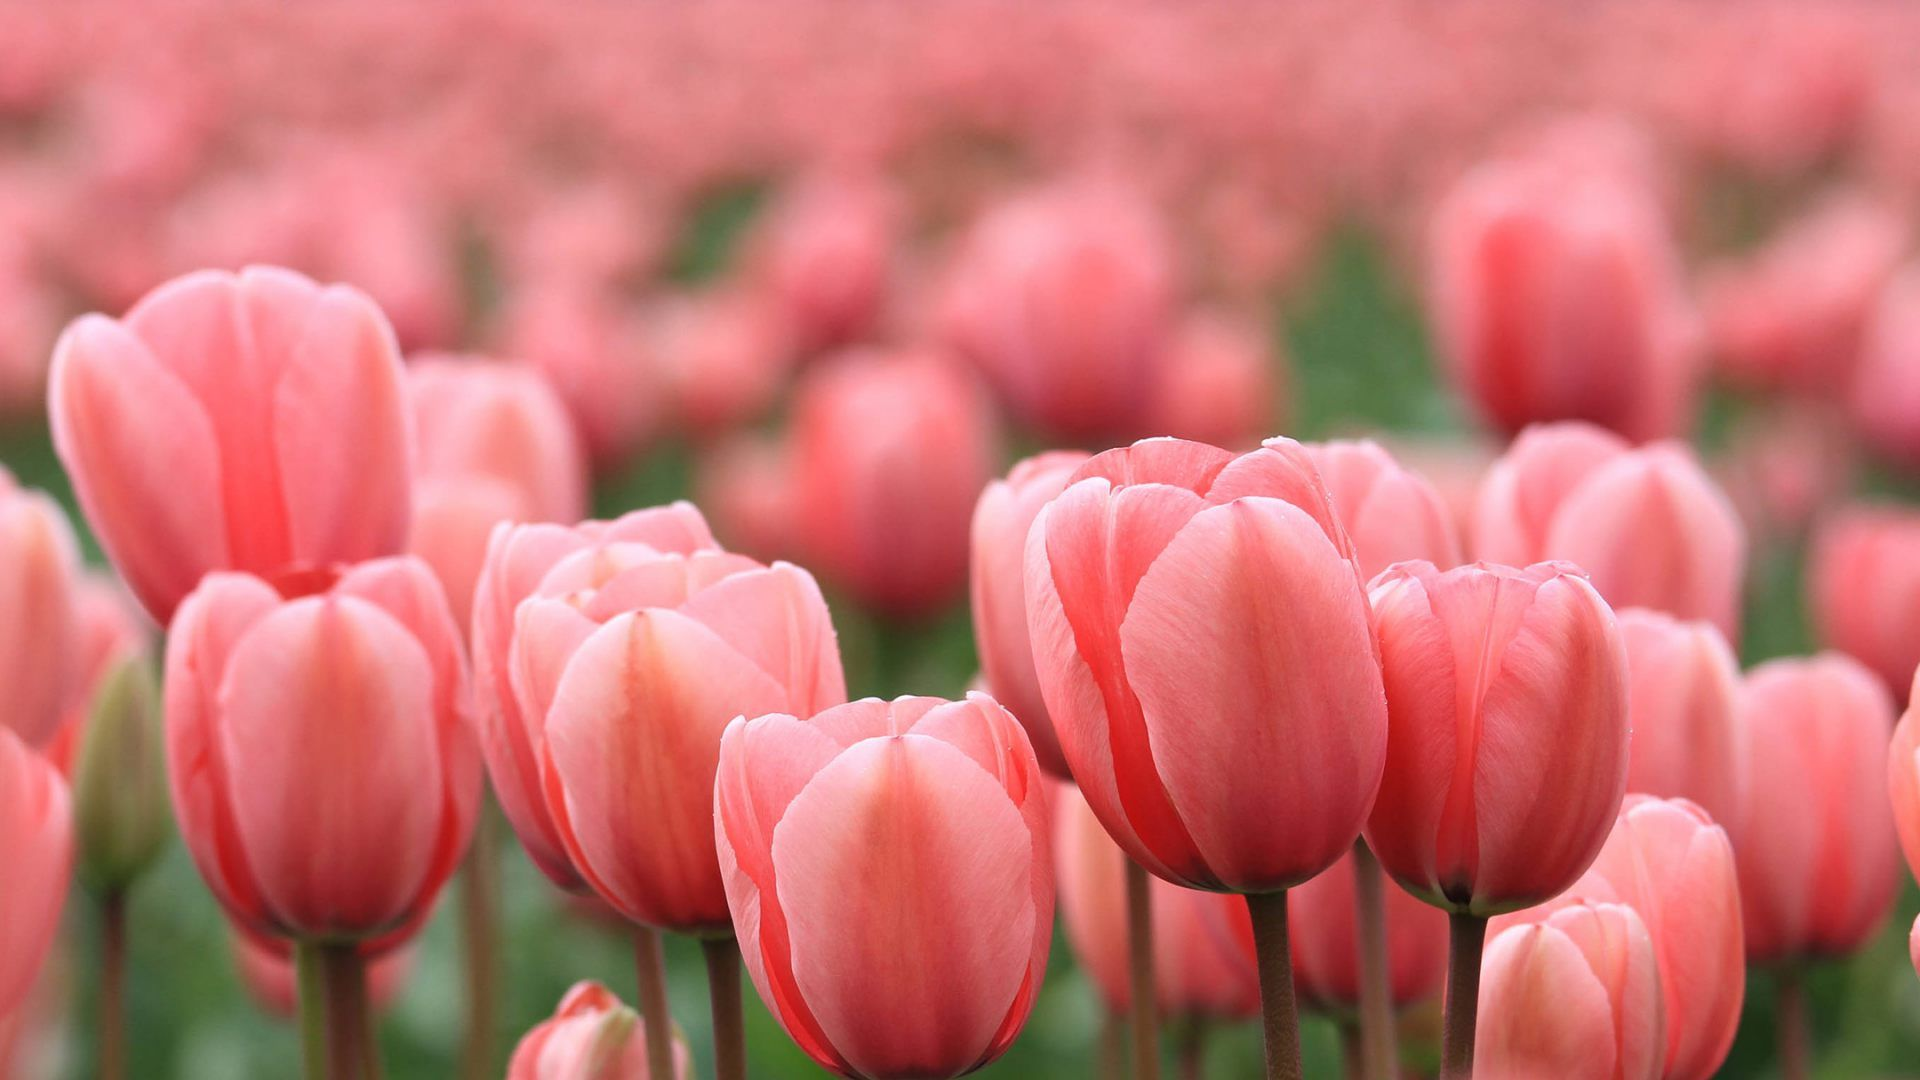 Pink tulips wallpapers wallpaper tulips images hd wallpapers pink tulips wallpapers wallpaper tulips images thecheapjerseys Choice Image